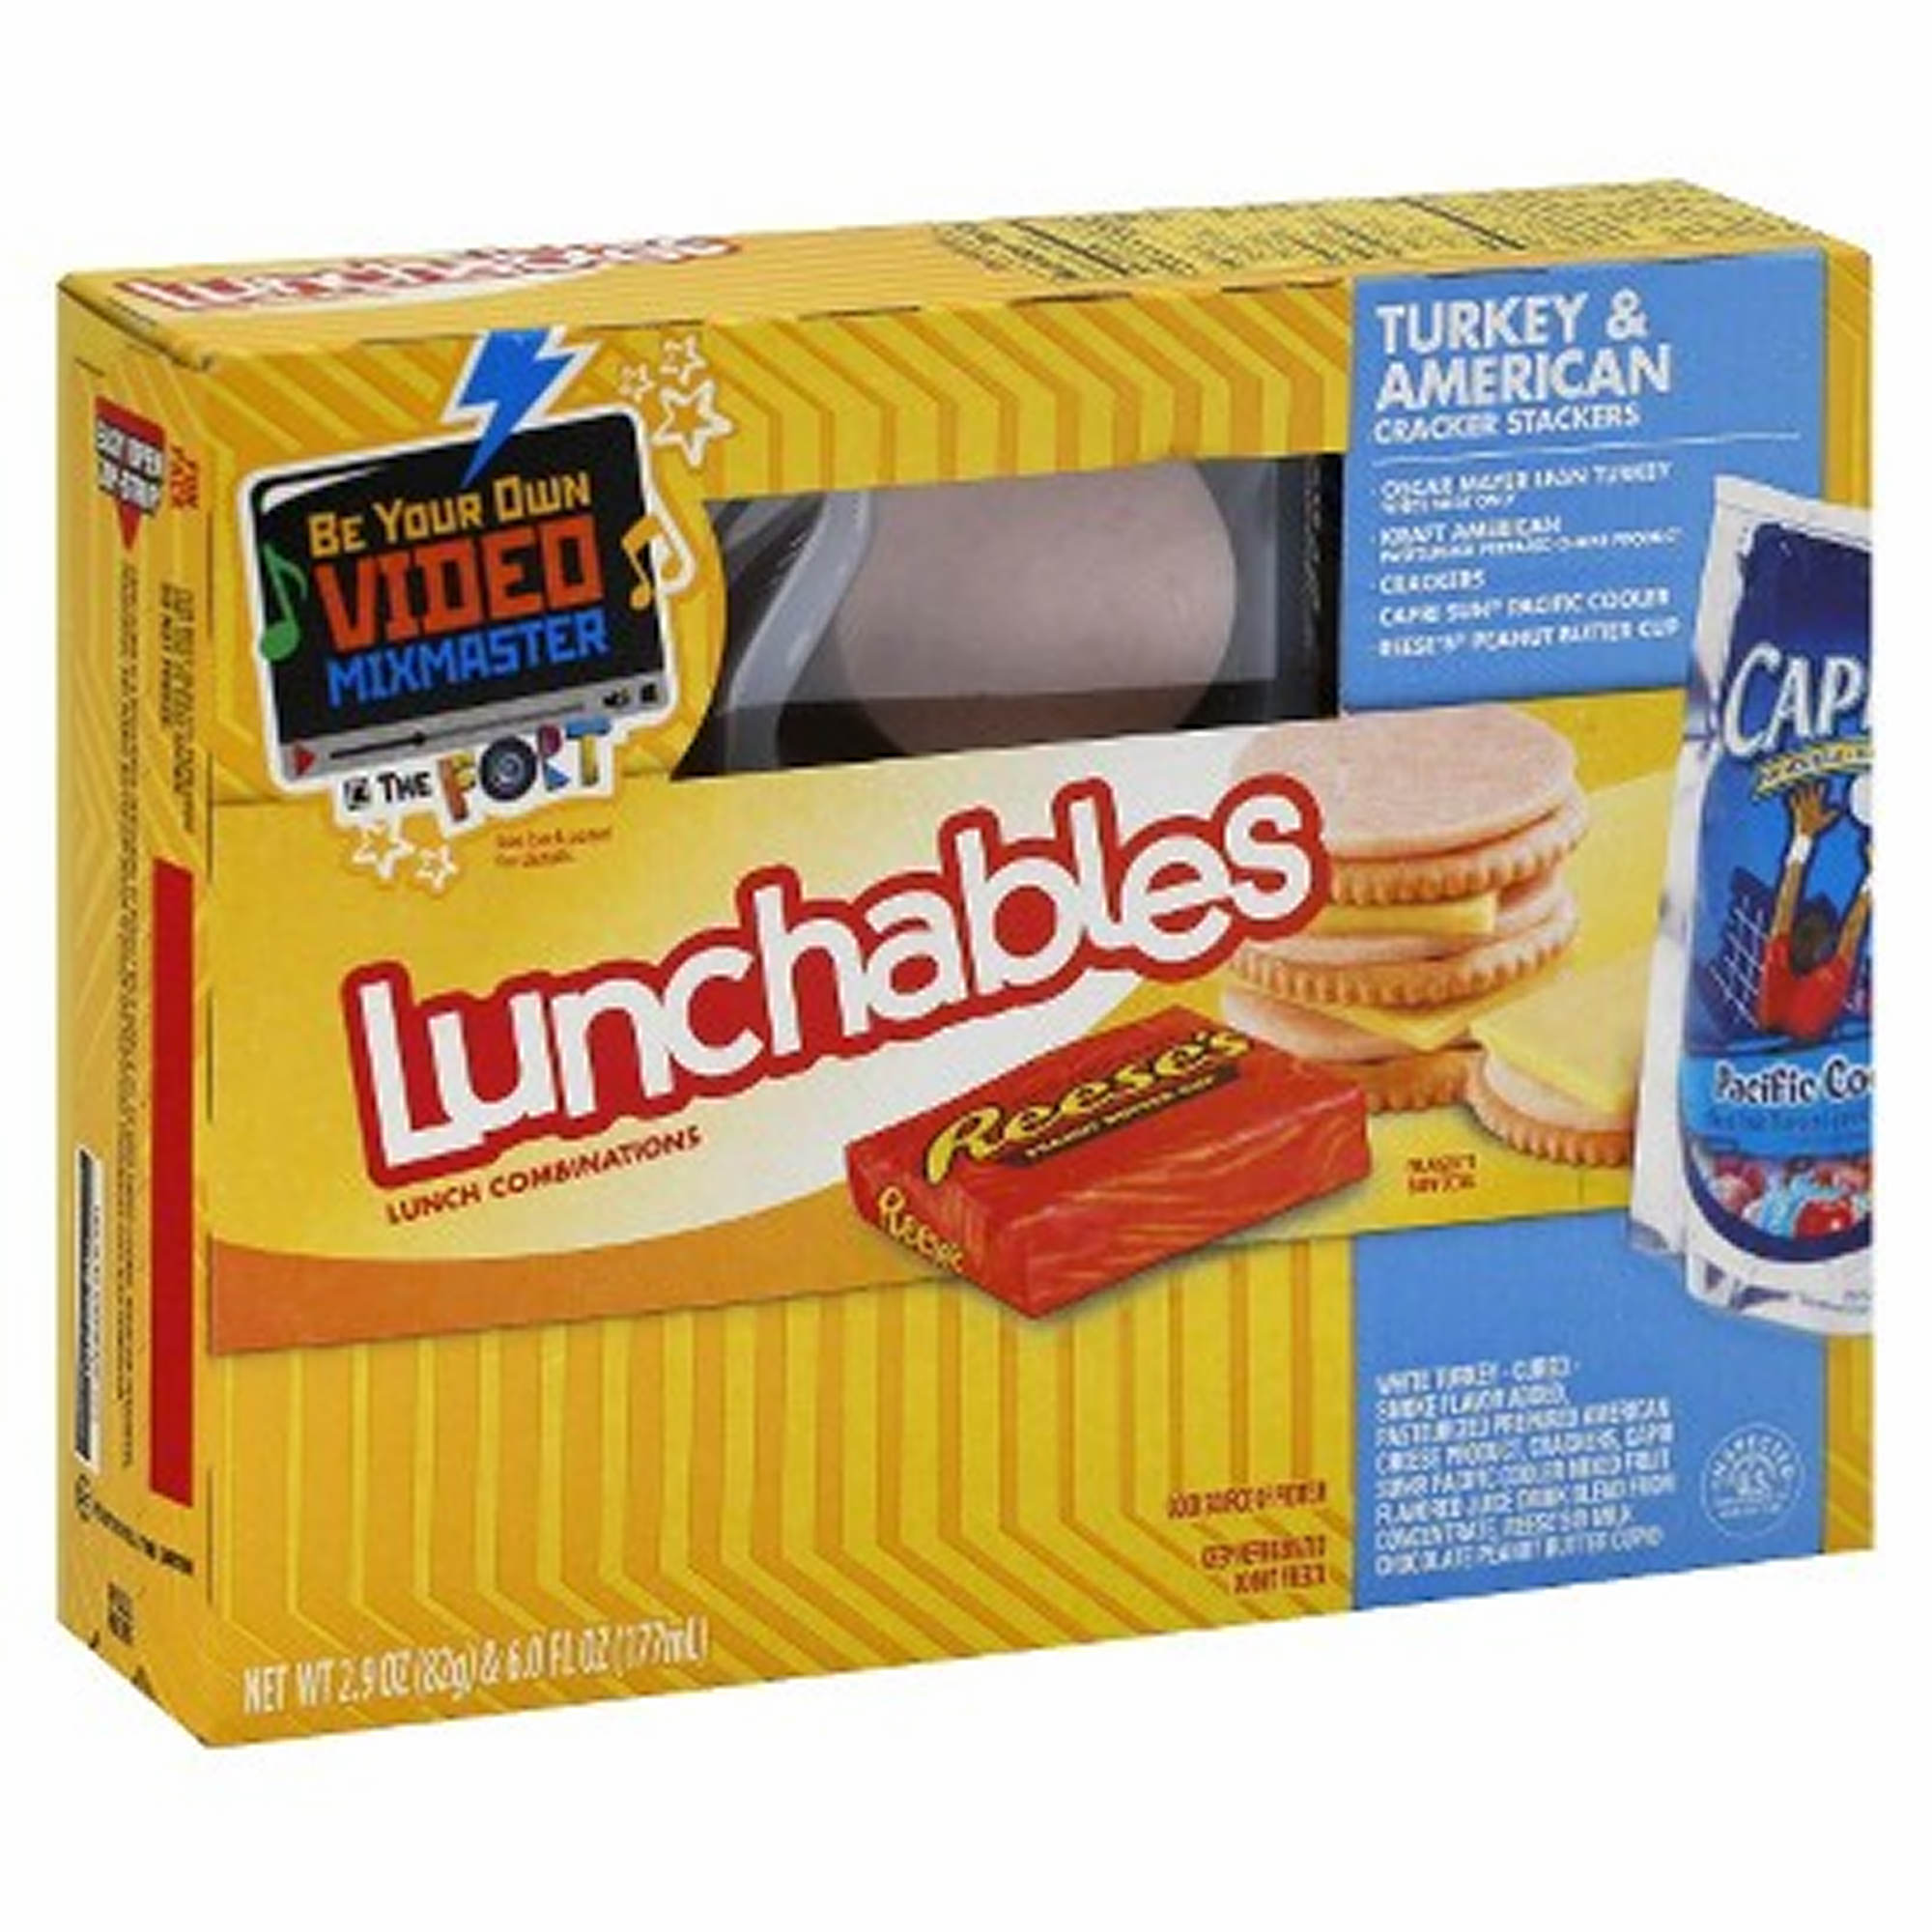 Lunchables Turkey American Cracker Stackers 89 Oz 2 Pk product in addition Article 41702049 9971 5530 87c3 392fafb2dce7 besides 320593447744 additionally Products together with 42593 Oscar Mayer Delifresh  bos Turkey Breast And Ham 9 Oz. on oscar mayer delivery to